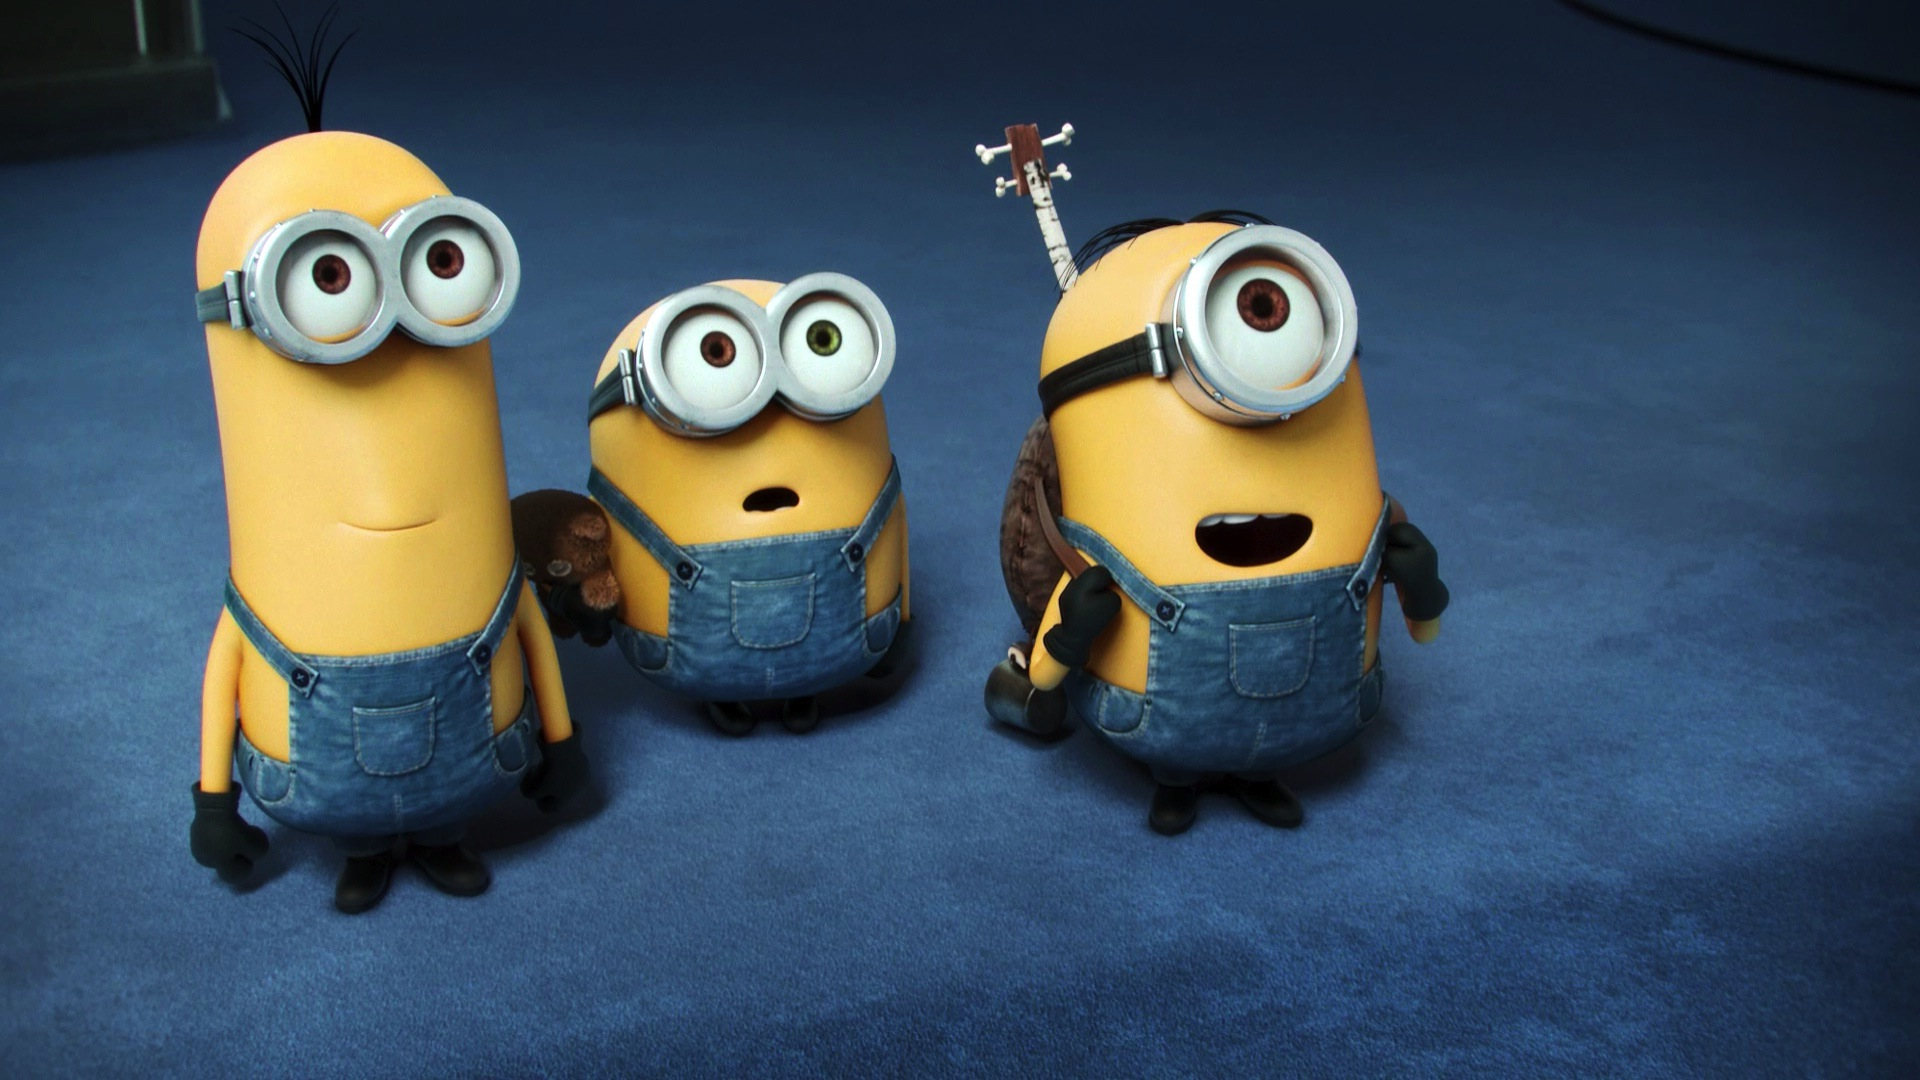 Kevin Bob Minions HD Cartoons 4k Wallpapers Images Backgrounds